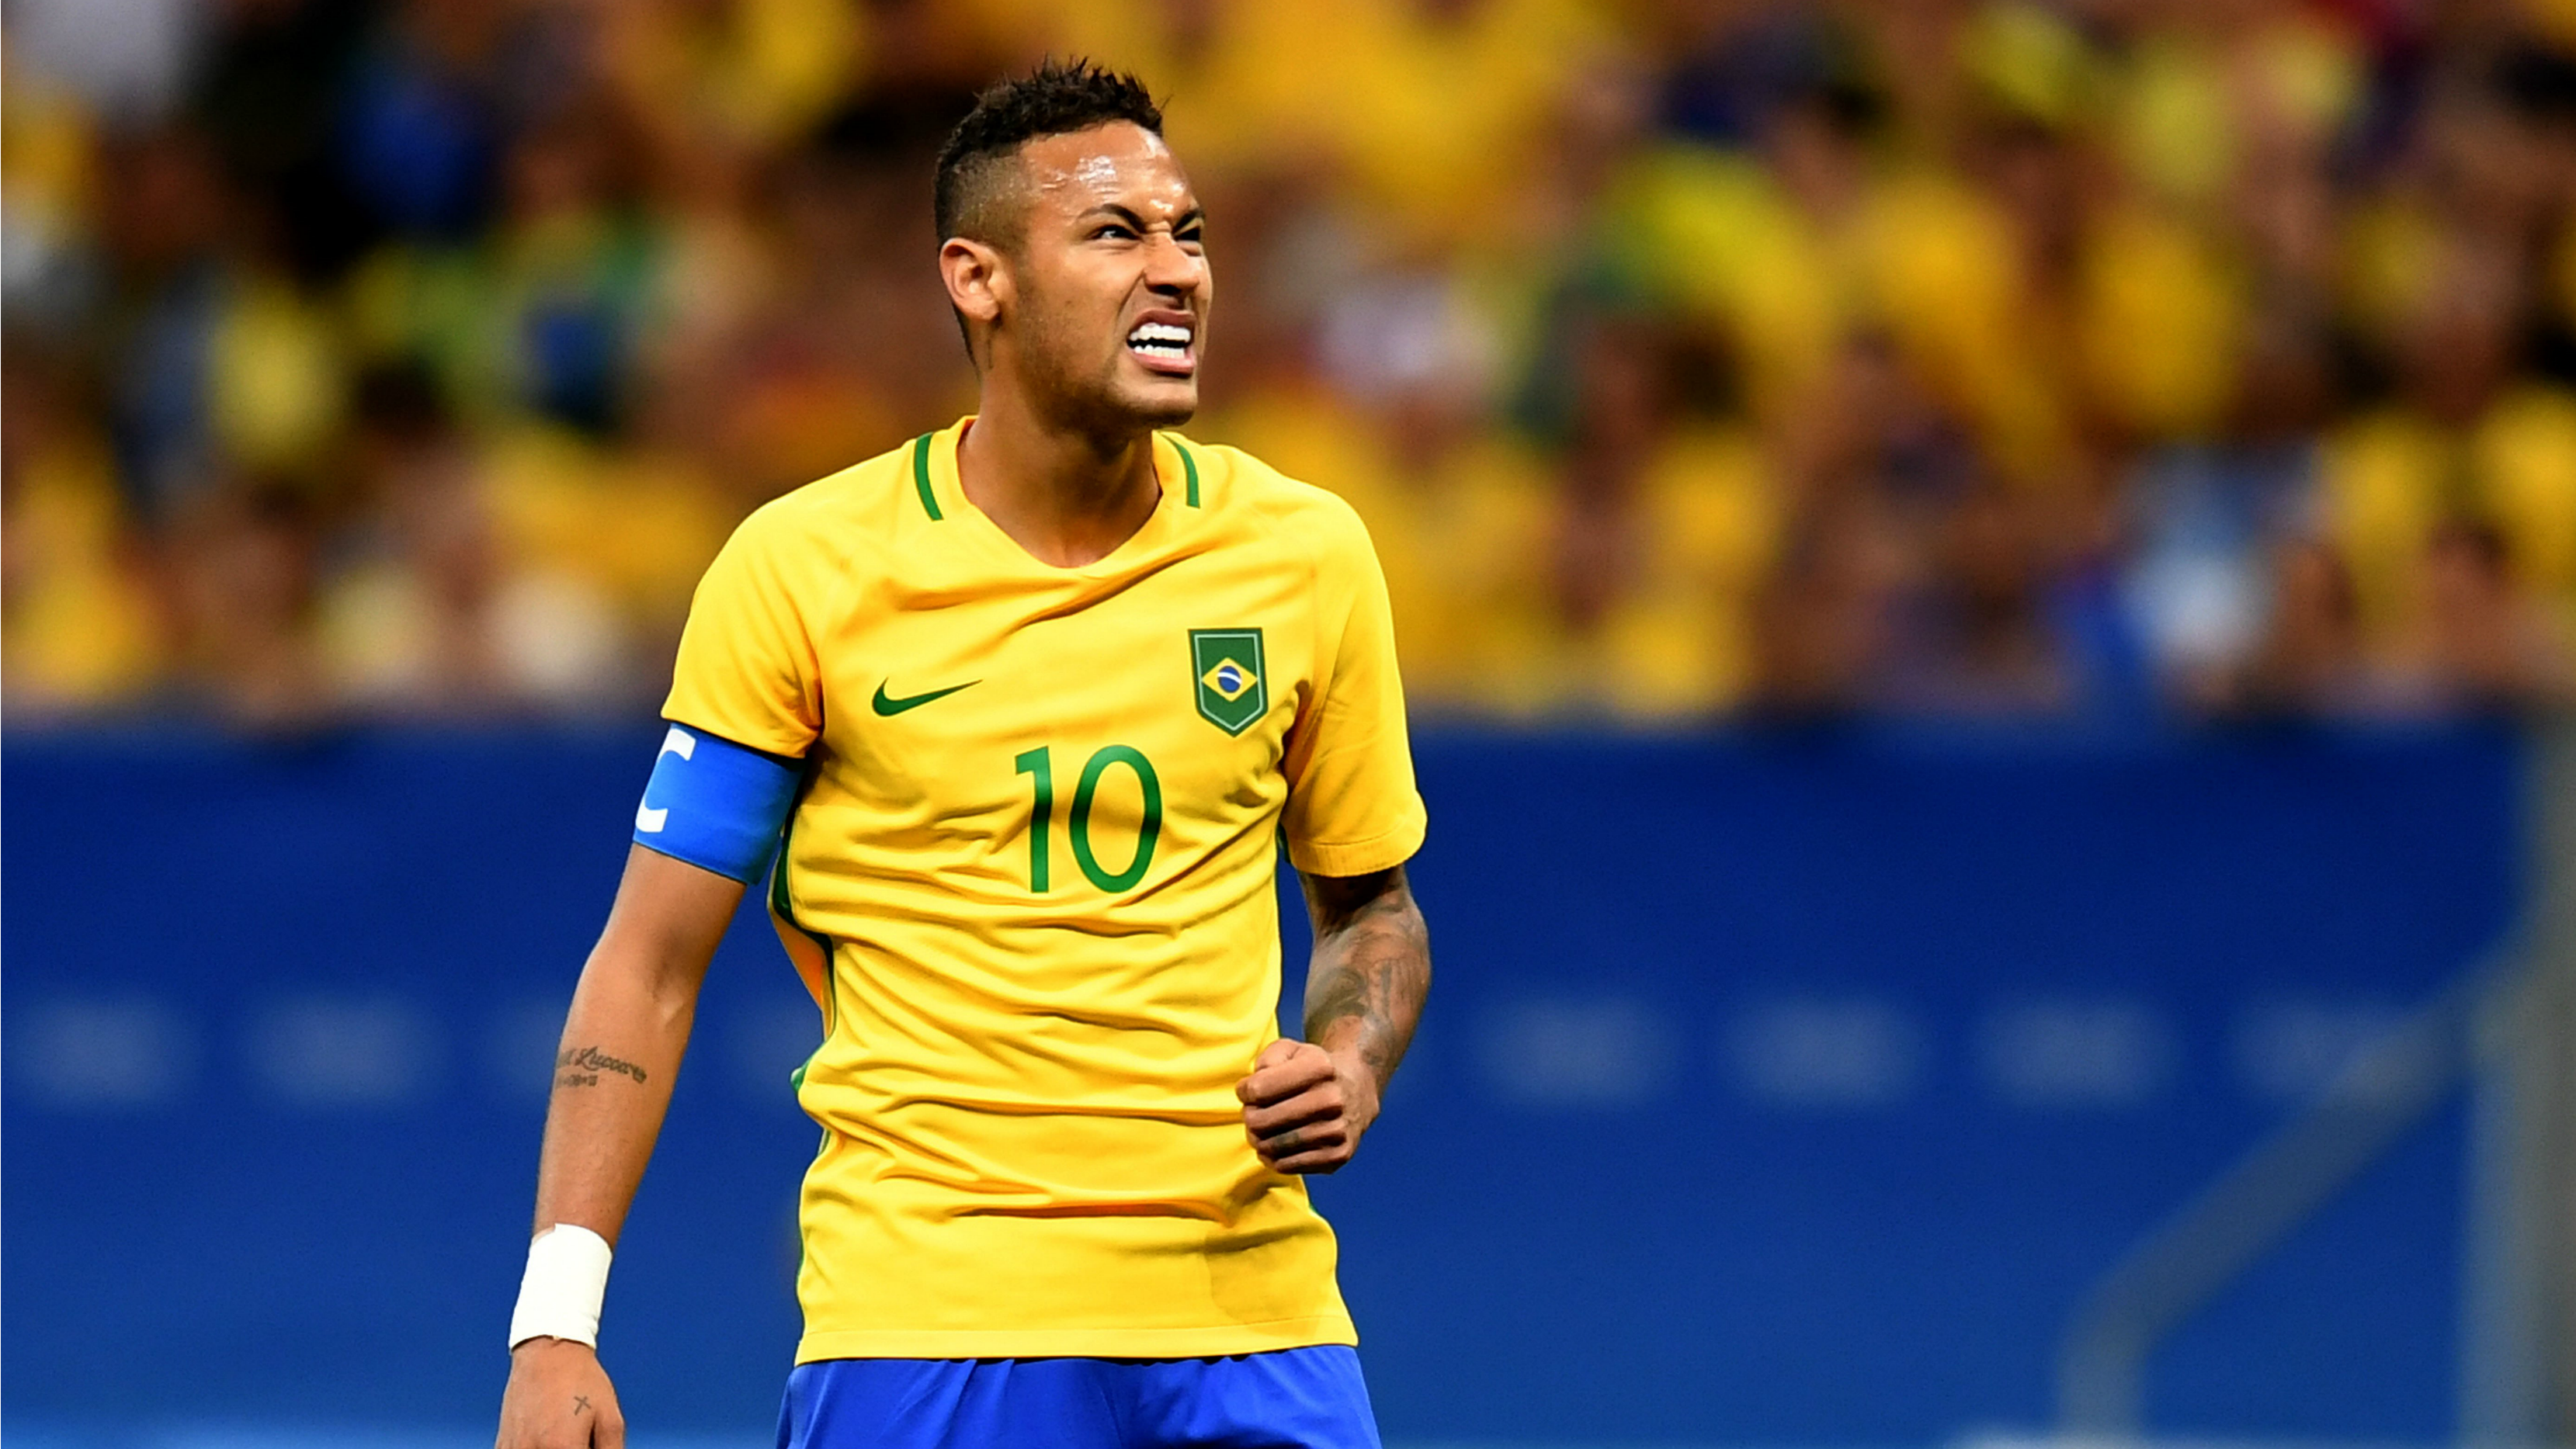 Brazil are on the brink of elimination after second goalless draw at the Olympics